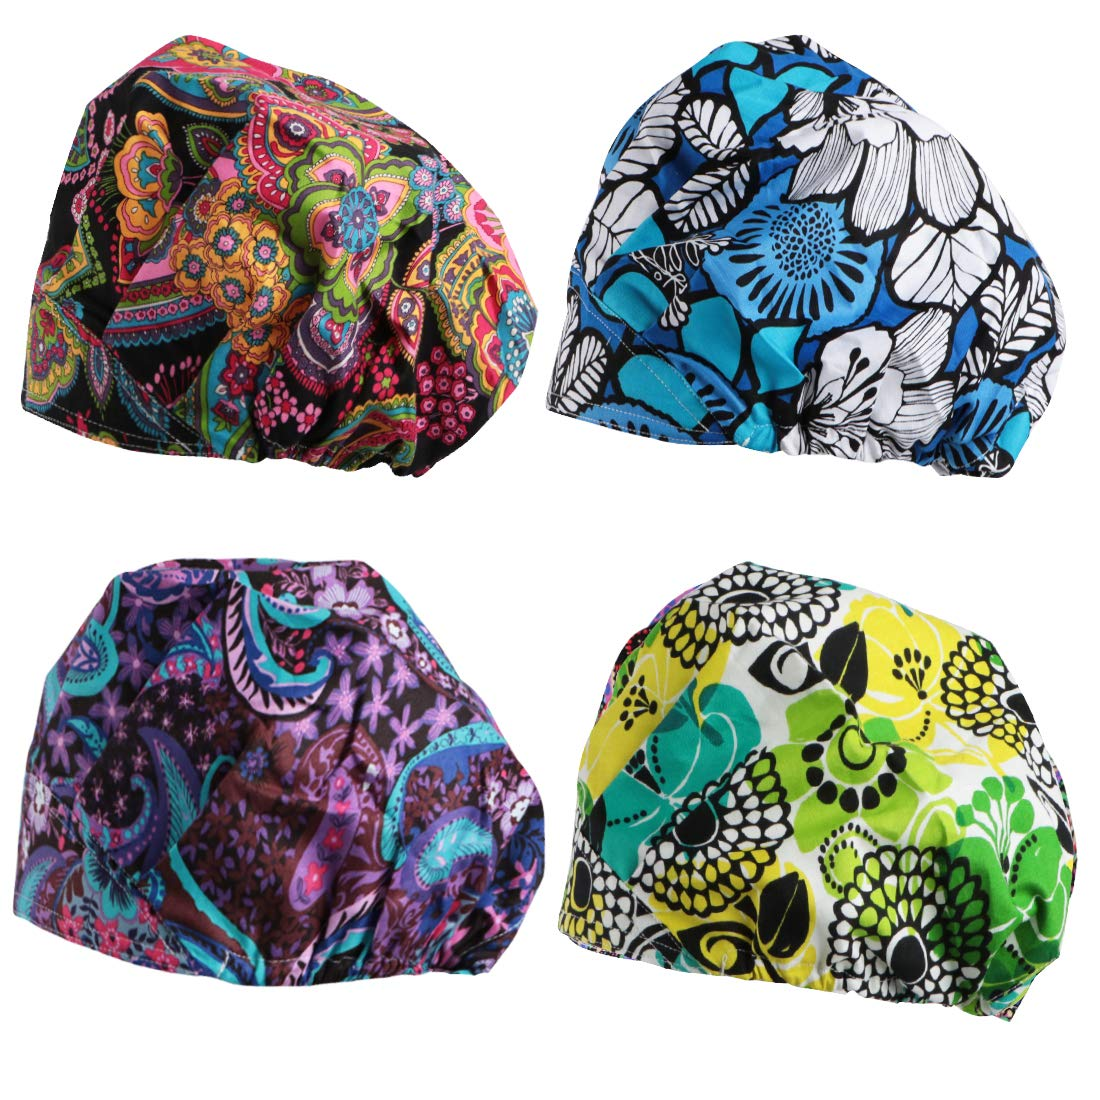 kilofly 4pc Women's Adjustable Scrub Cap Sweatband Bouffant Hats Value Set by kilofly